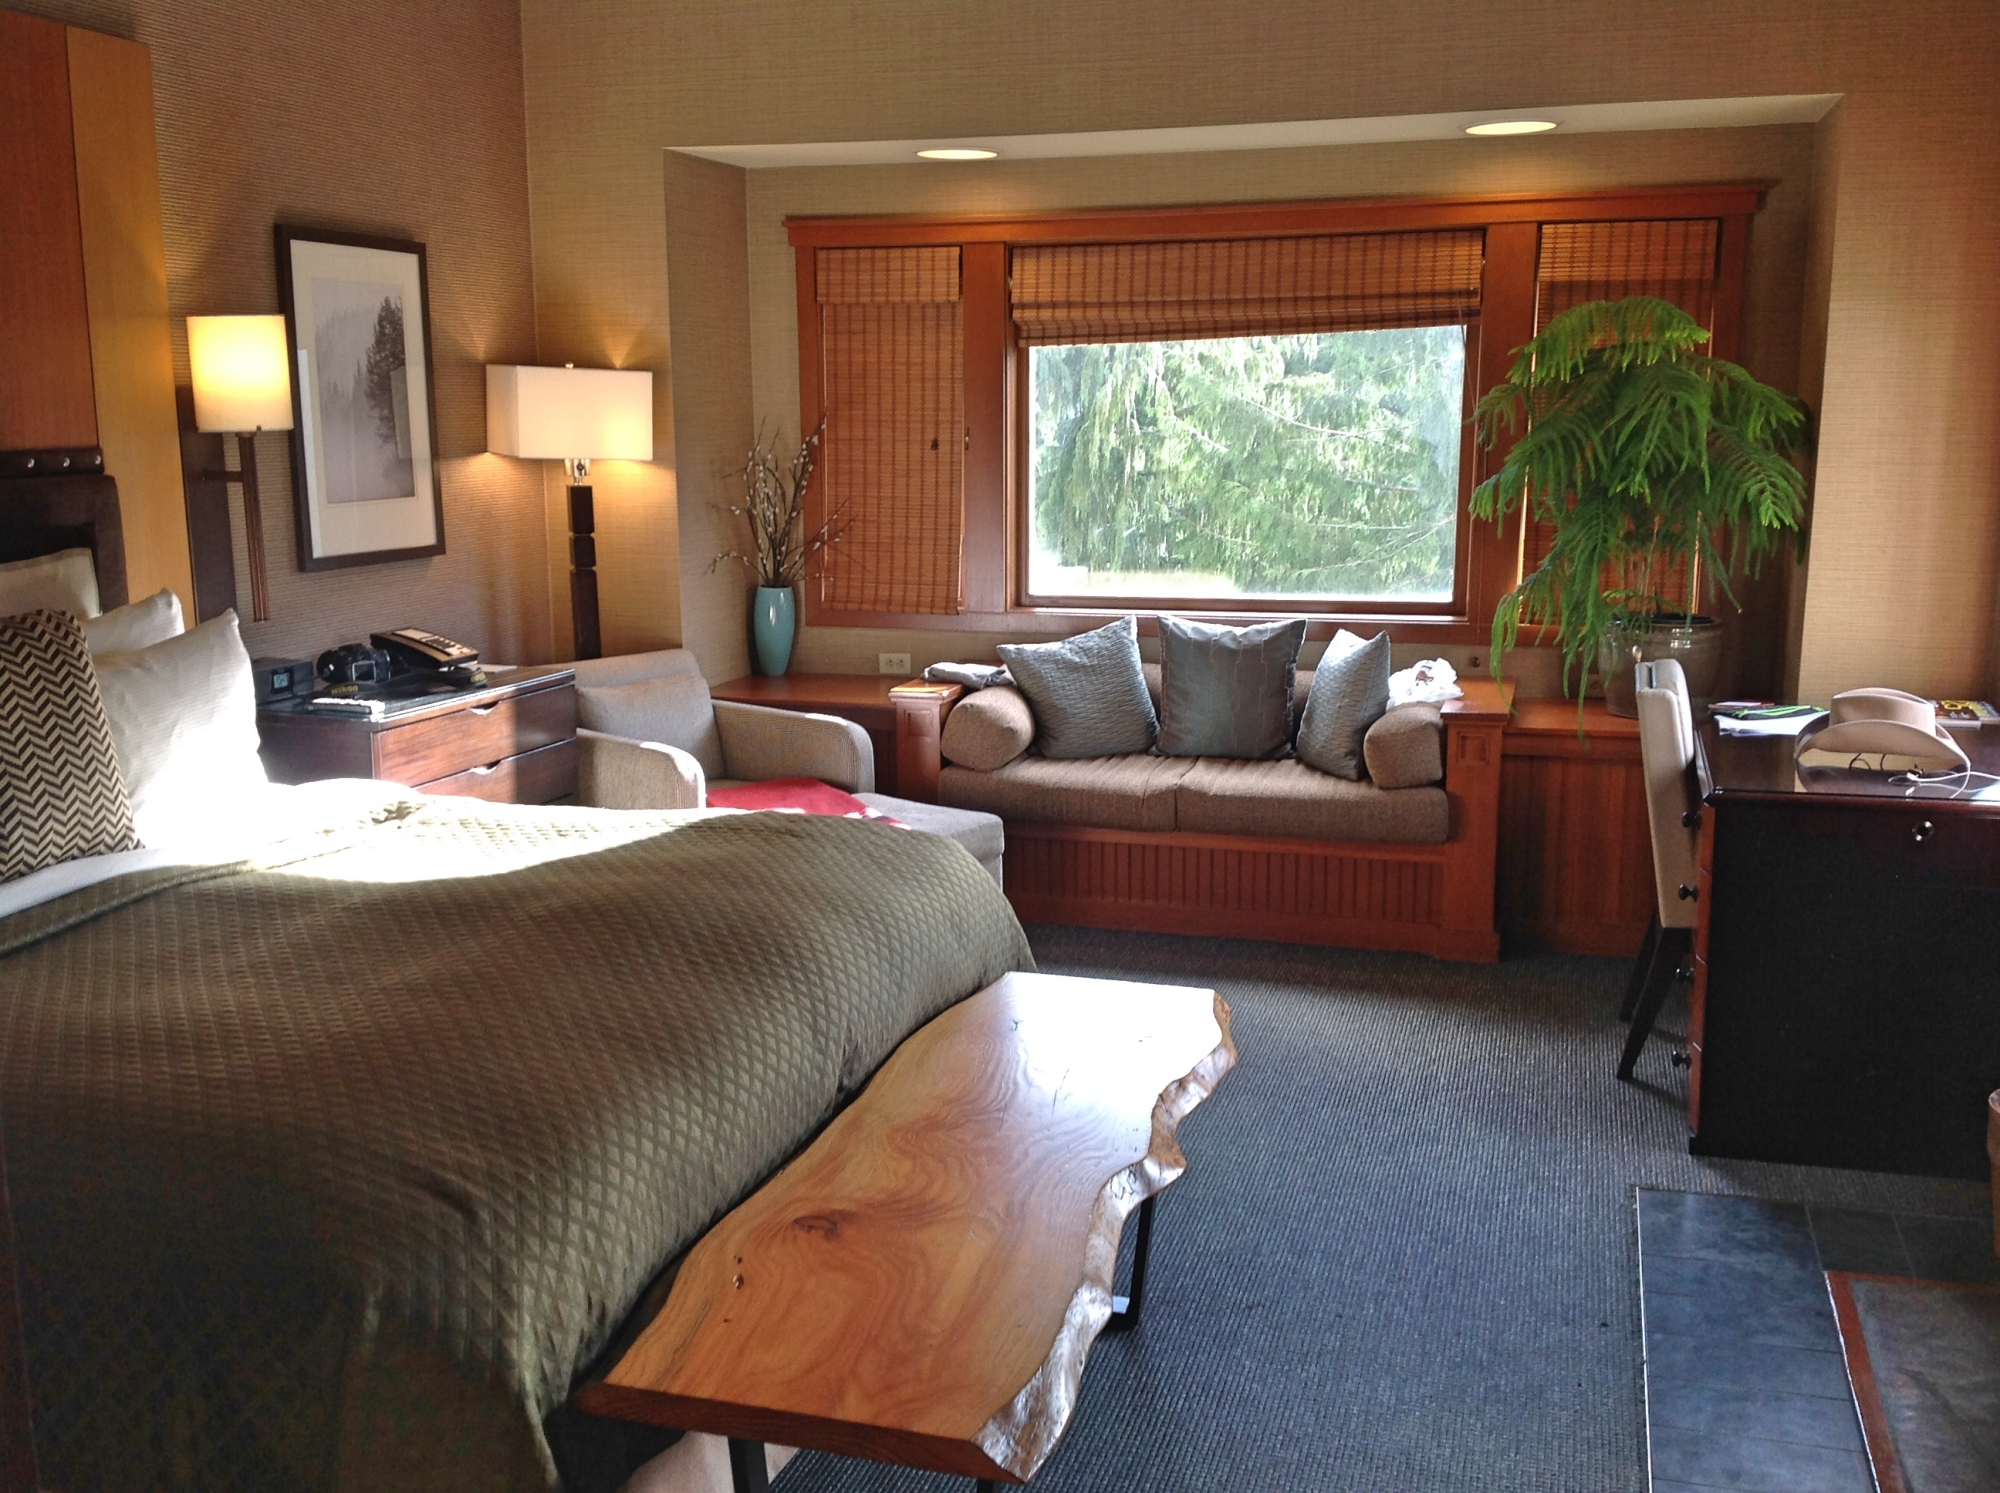 Номер отеля Salish Lodge&Spa